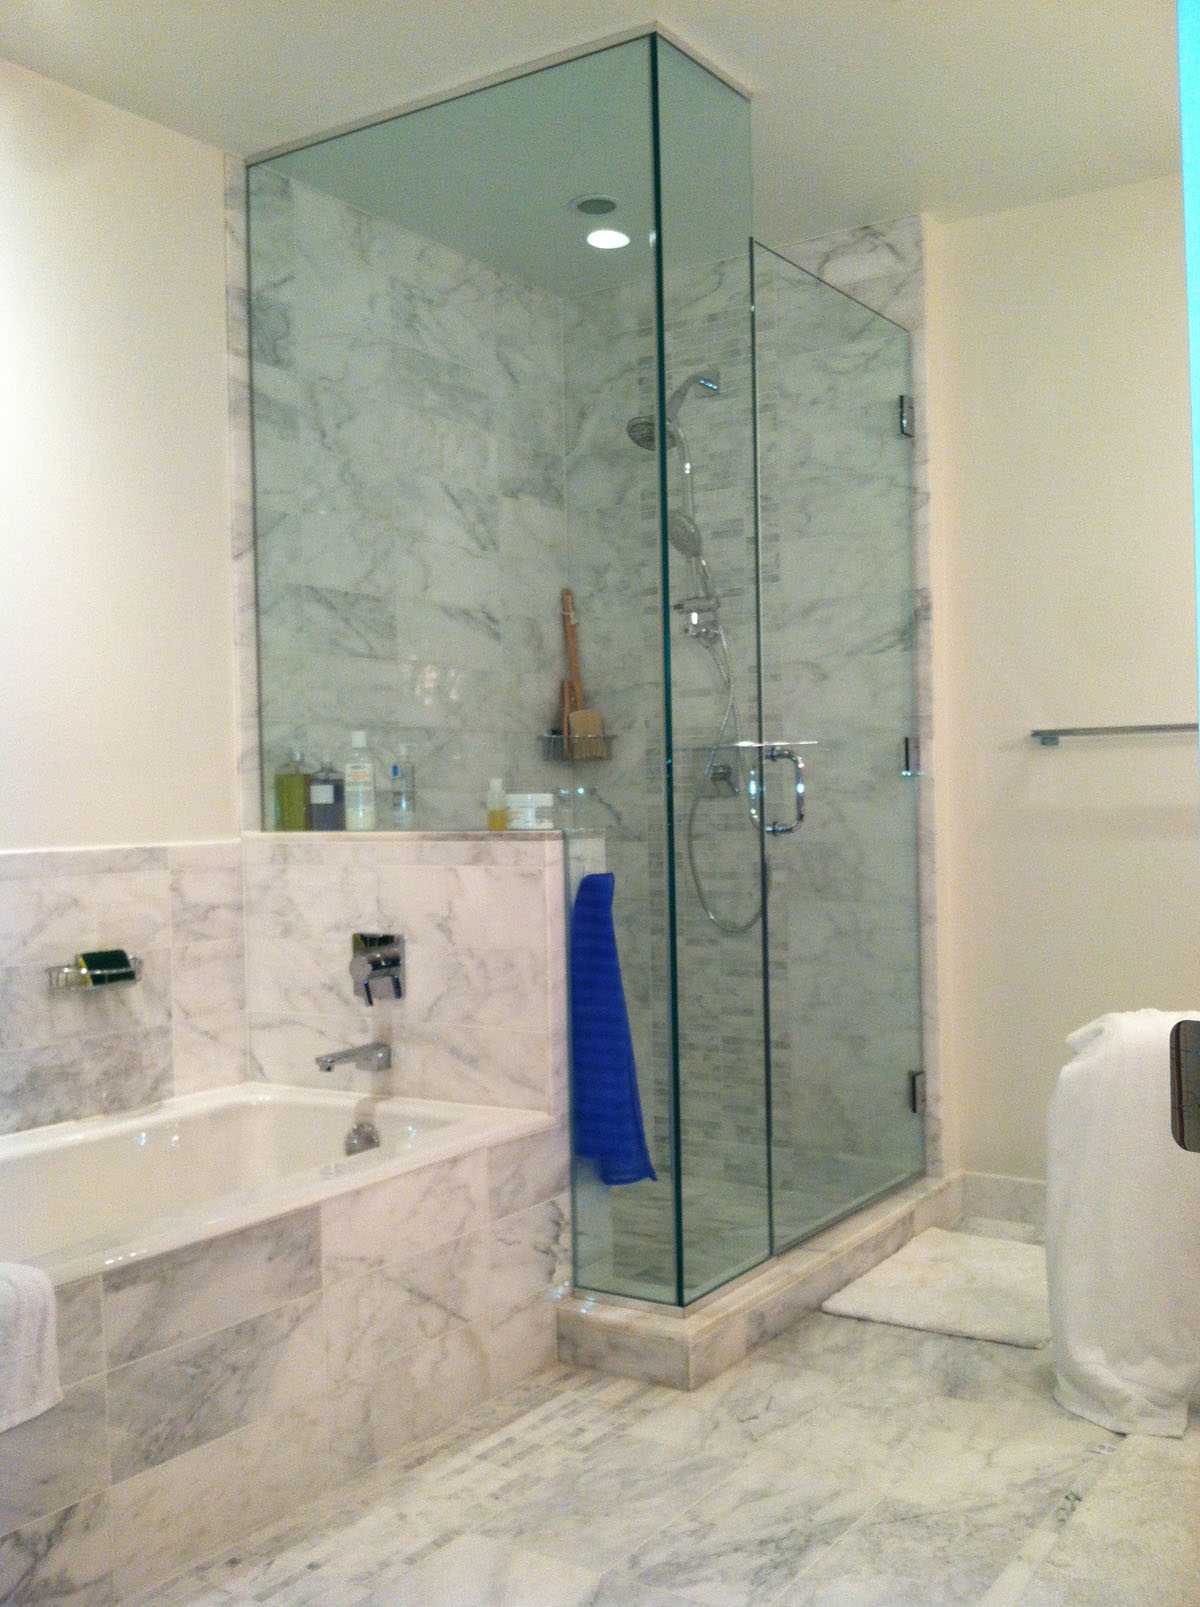 Bathroom Remodeling Boston boston marble bathroom remodel - bay state refinishing & remodeling